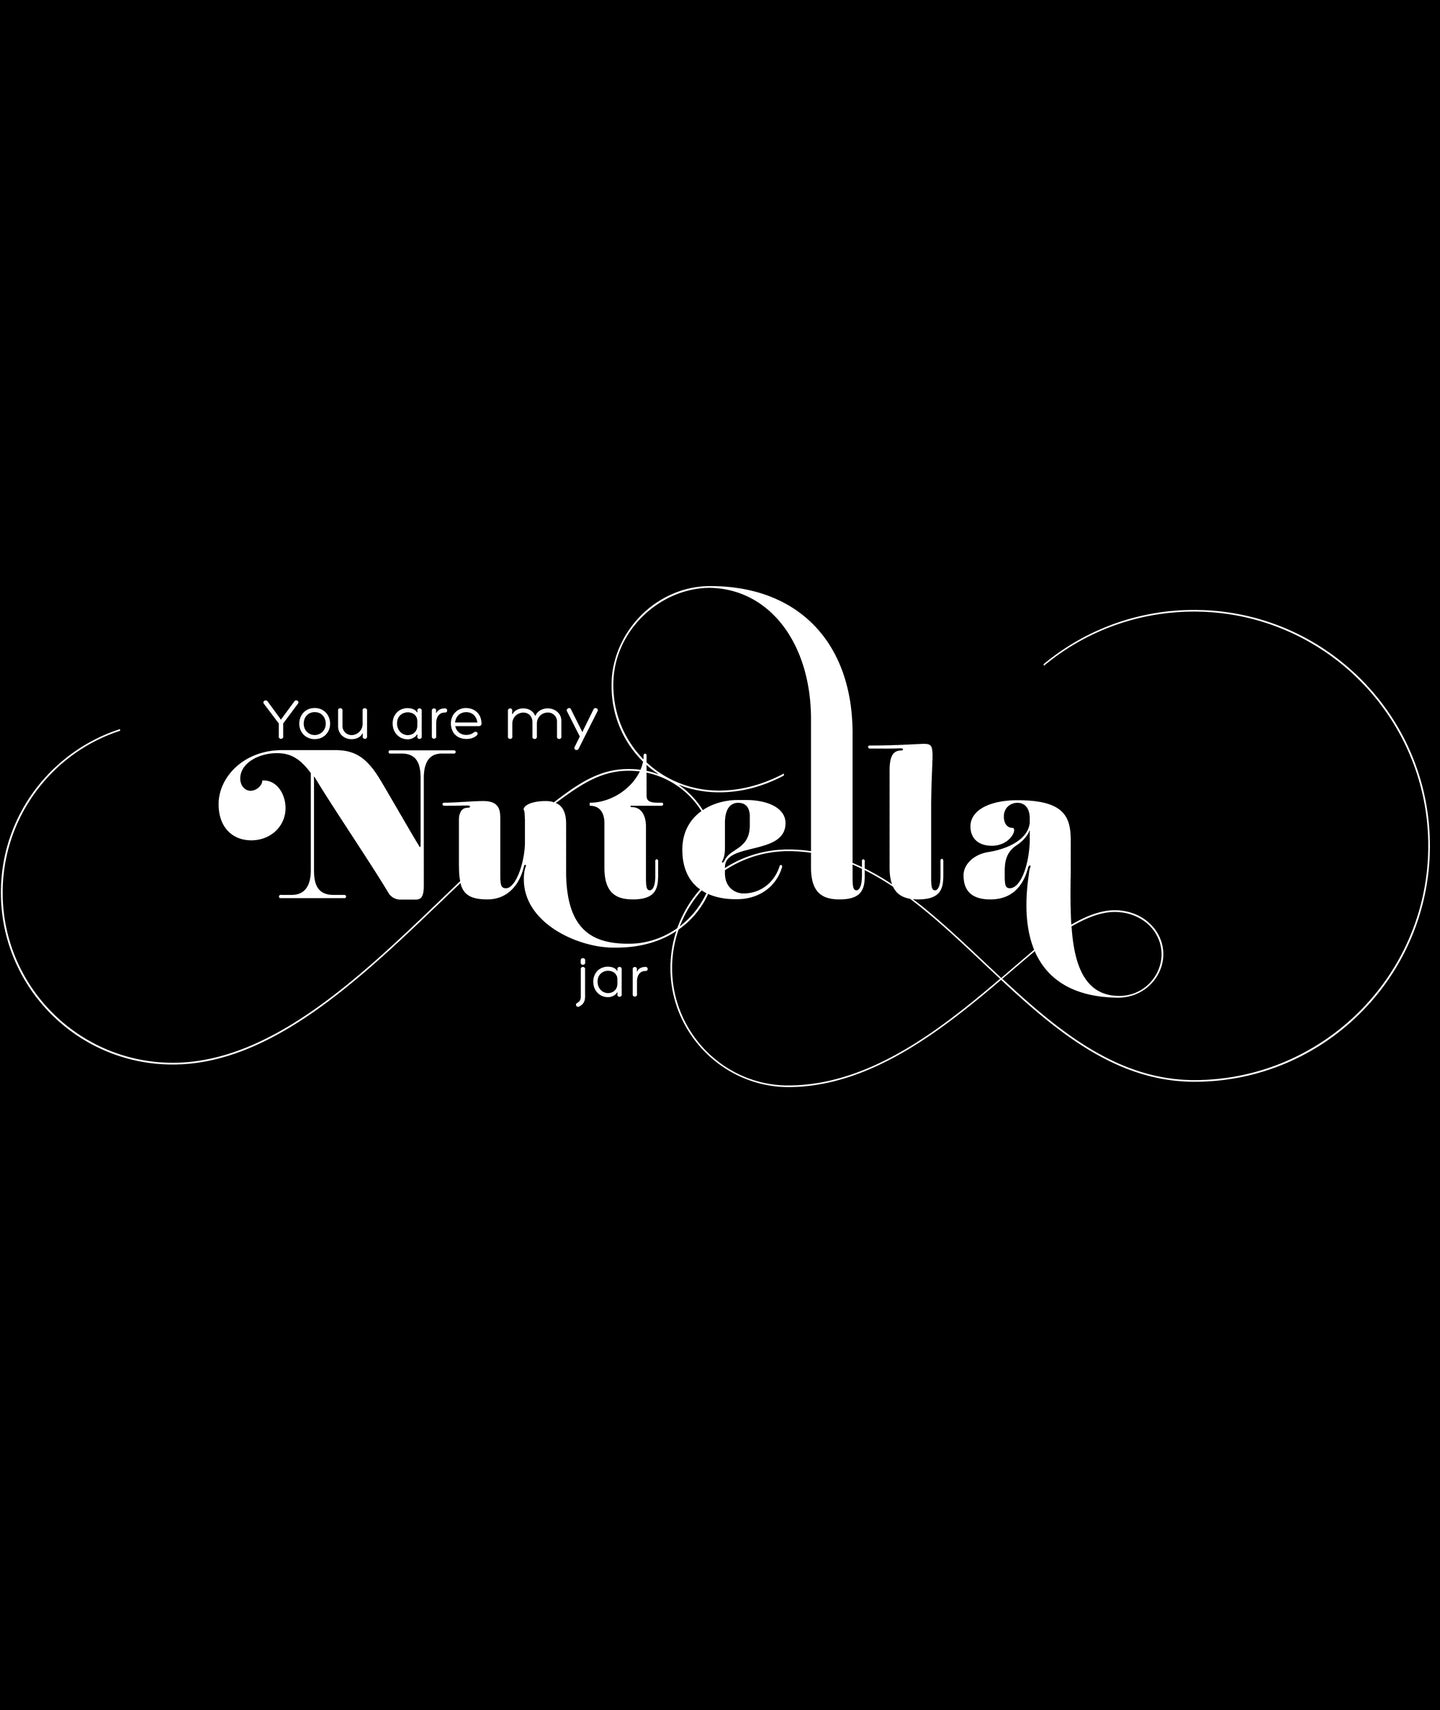 You are my nutella jar.